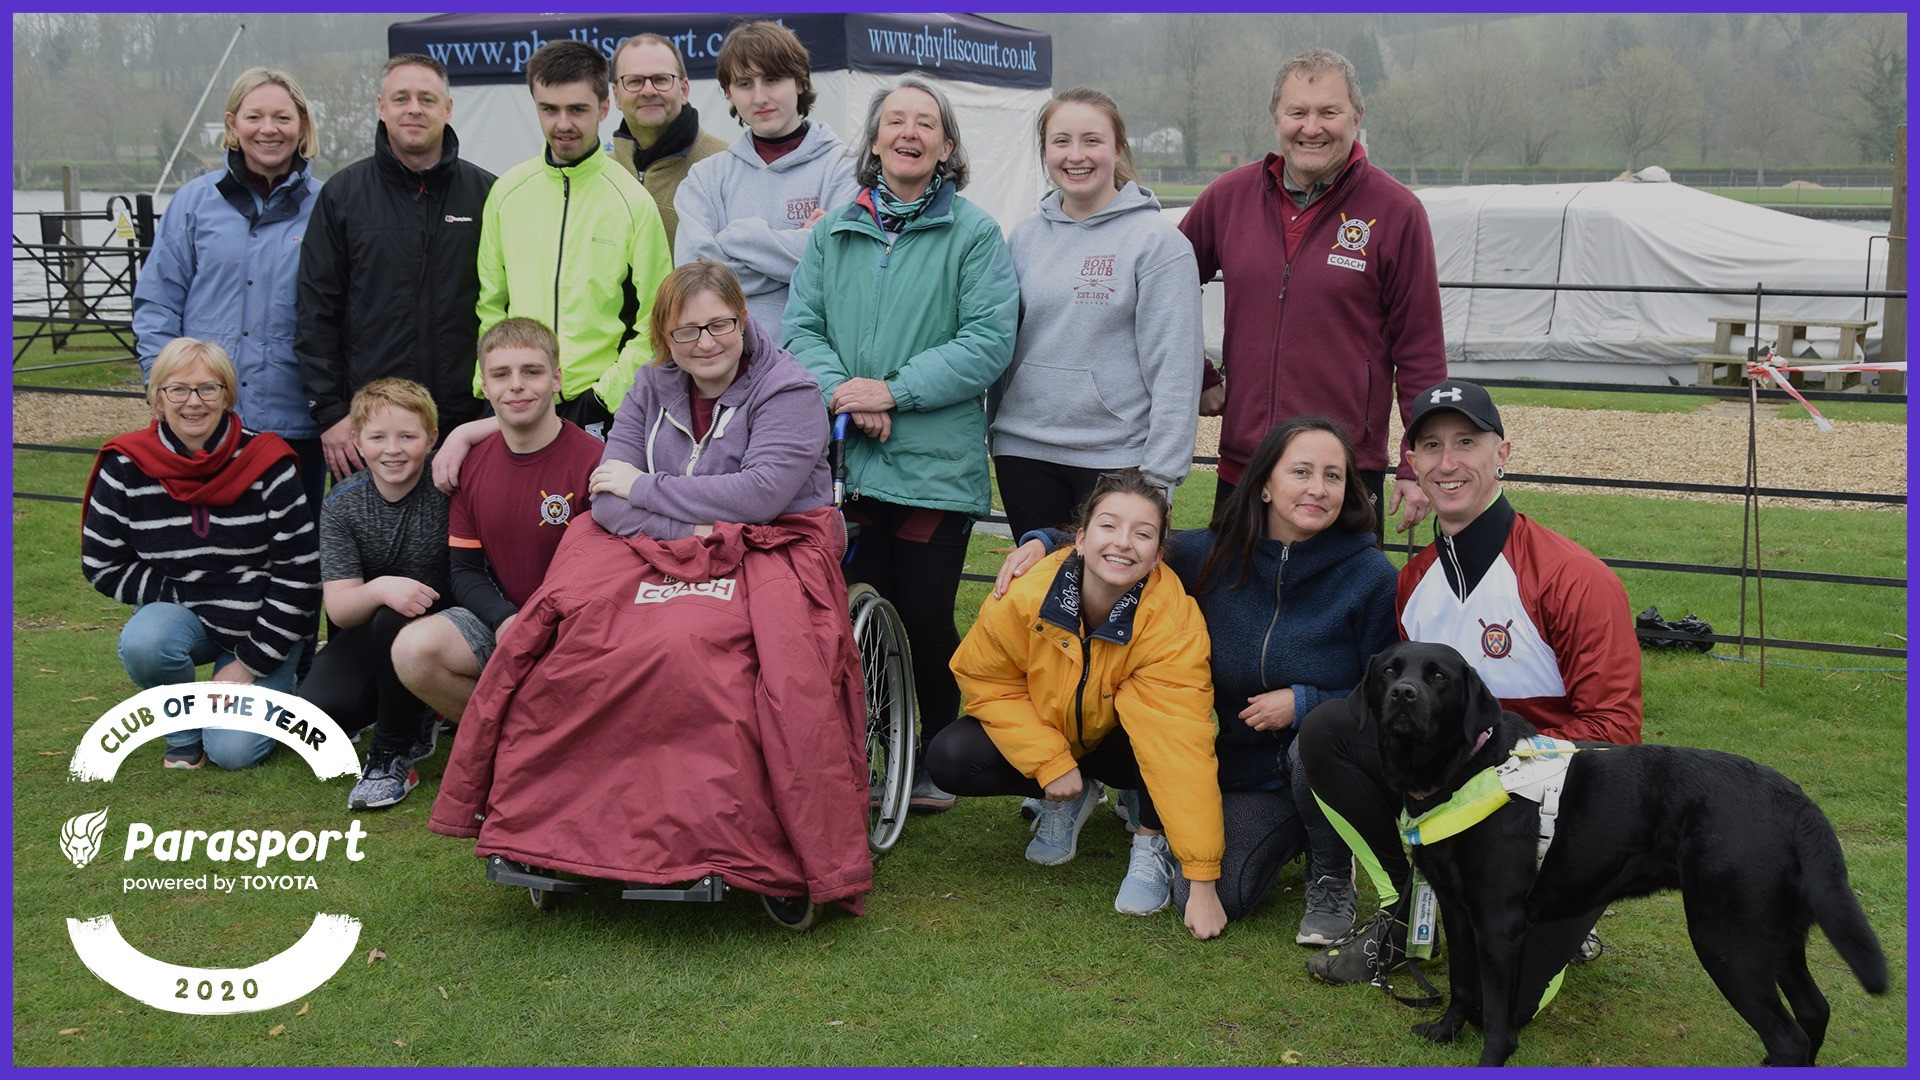 Stratford-upon-Avon Boat Club named first Parasport Club of the Year